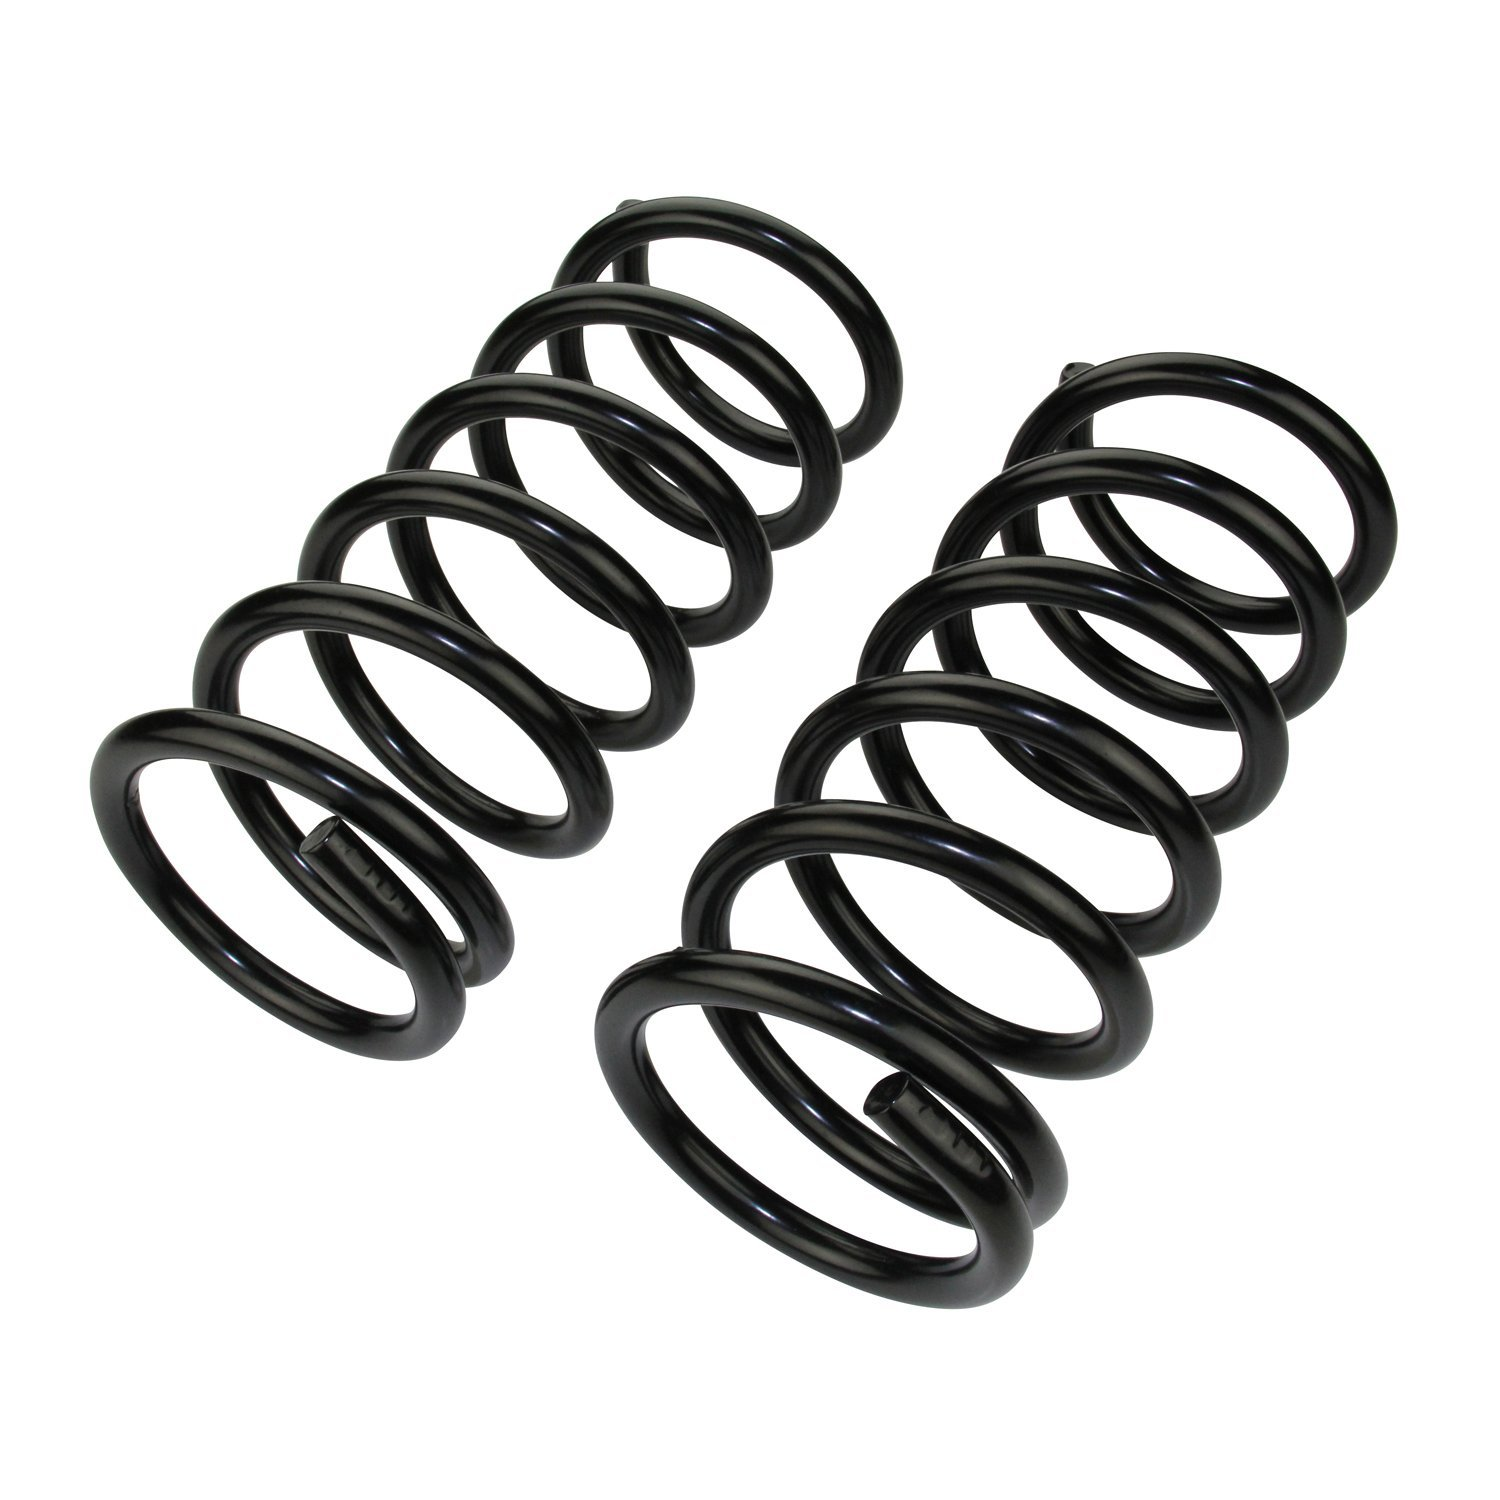 MOOG Chassis Products 81591 Coil Spring Set